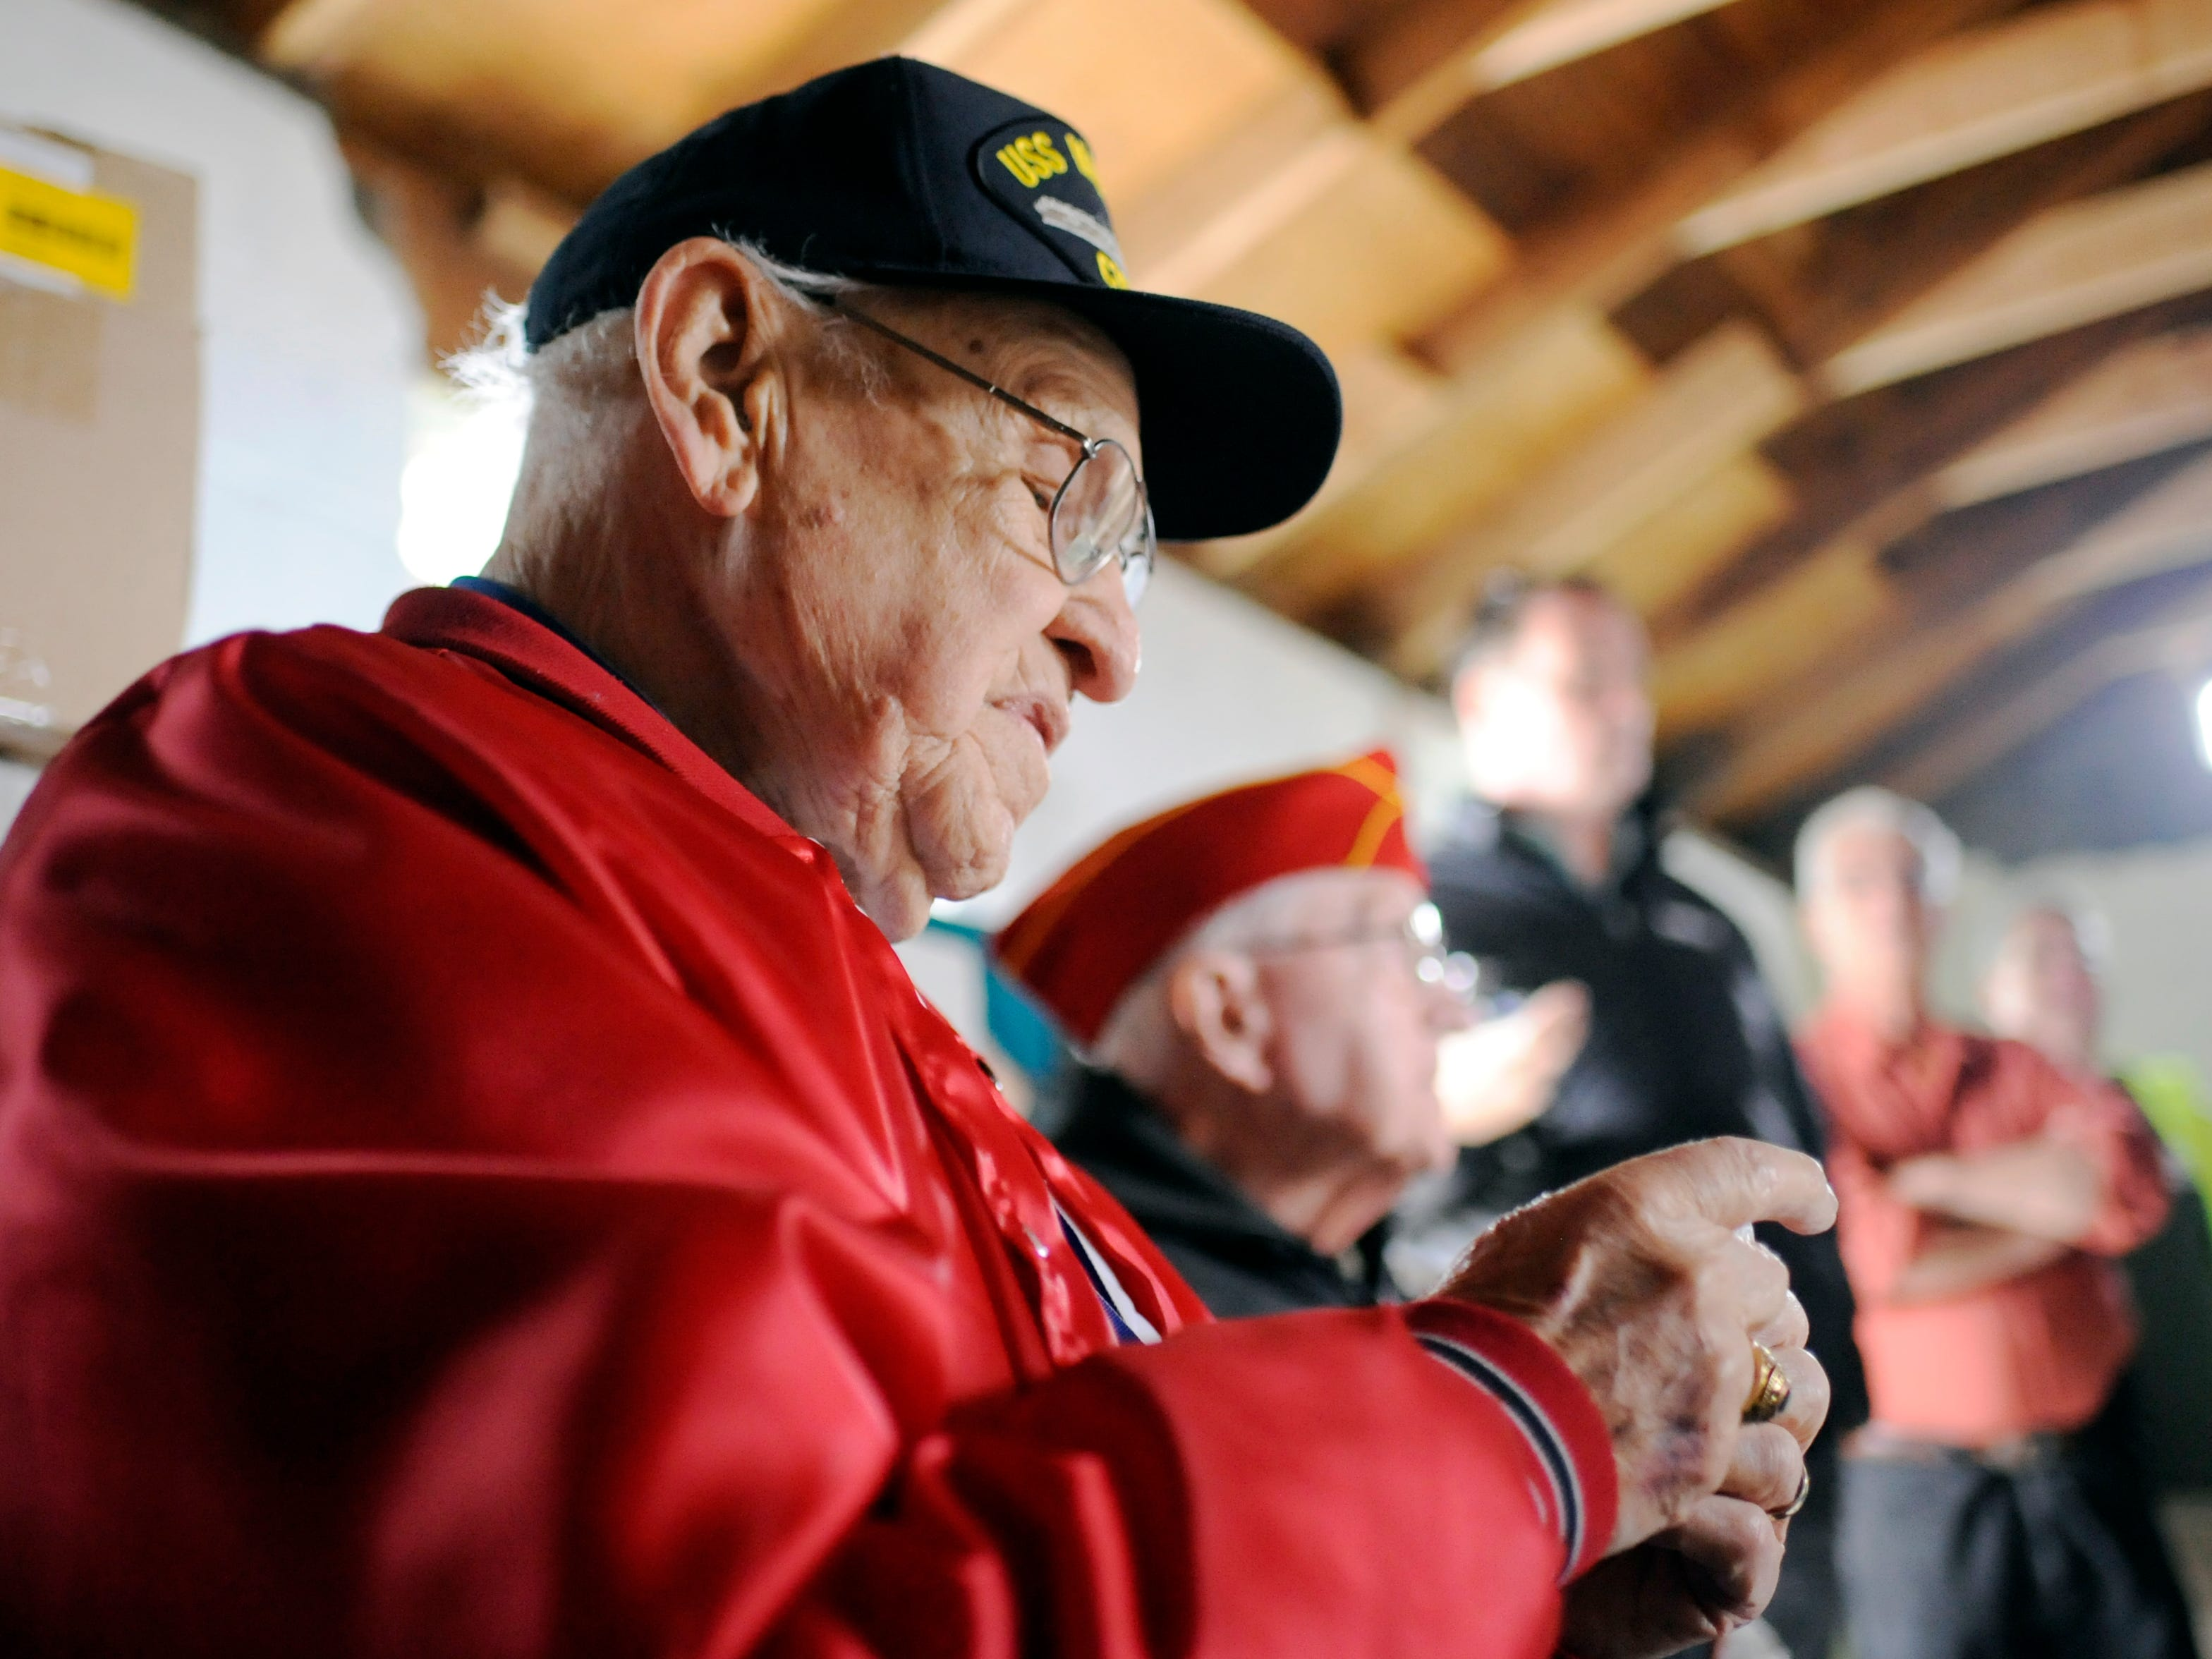 Owen Garrison, a 93-year-old WWII Navy Veteran and Millville Army Airfield Museum volunteer, looks at a special medal given to him by the Home Depot team during a building renovation event on Friday, November 9, 2018.